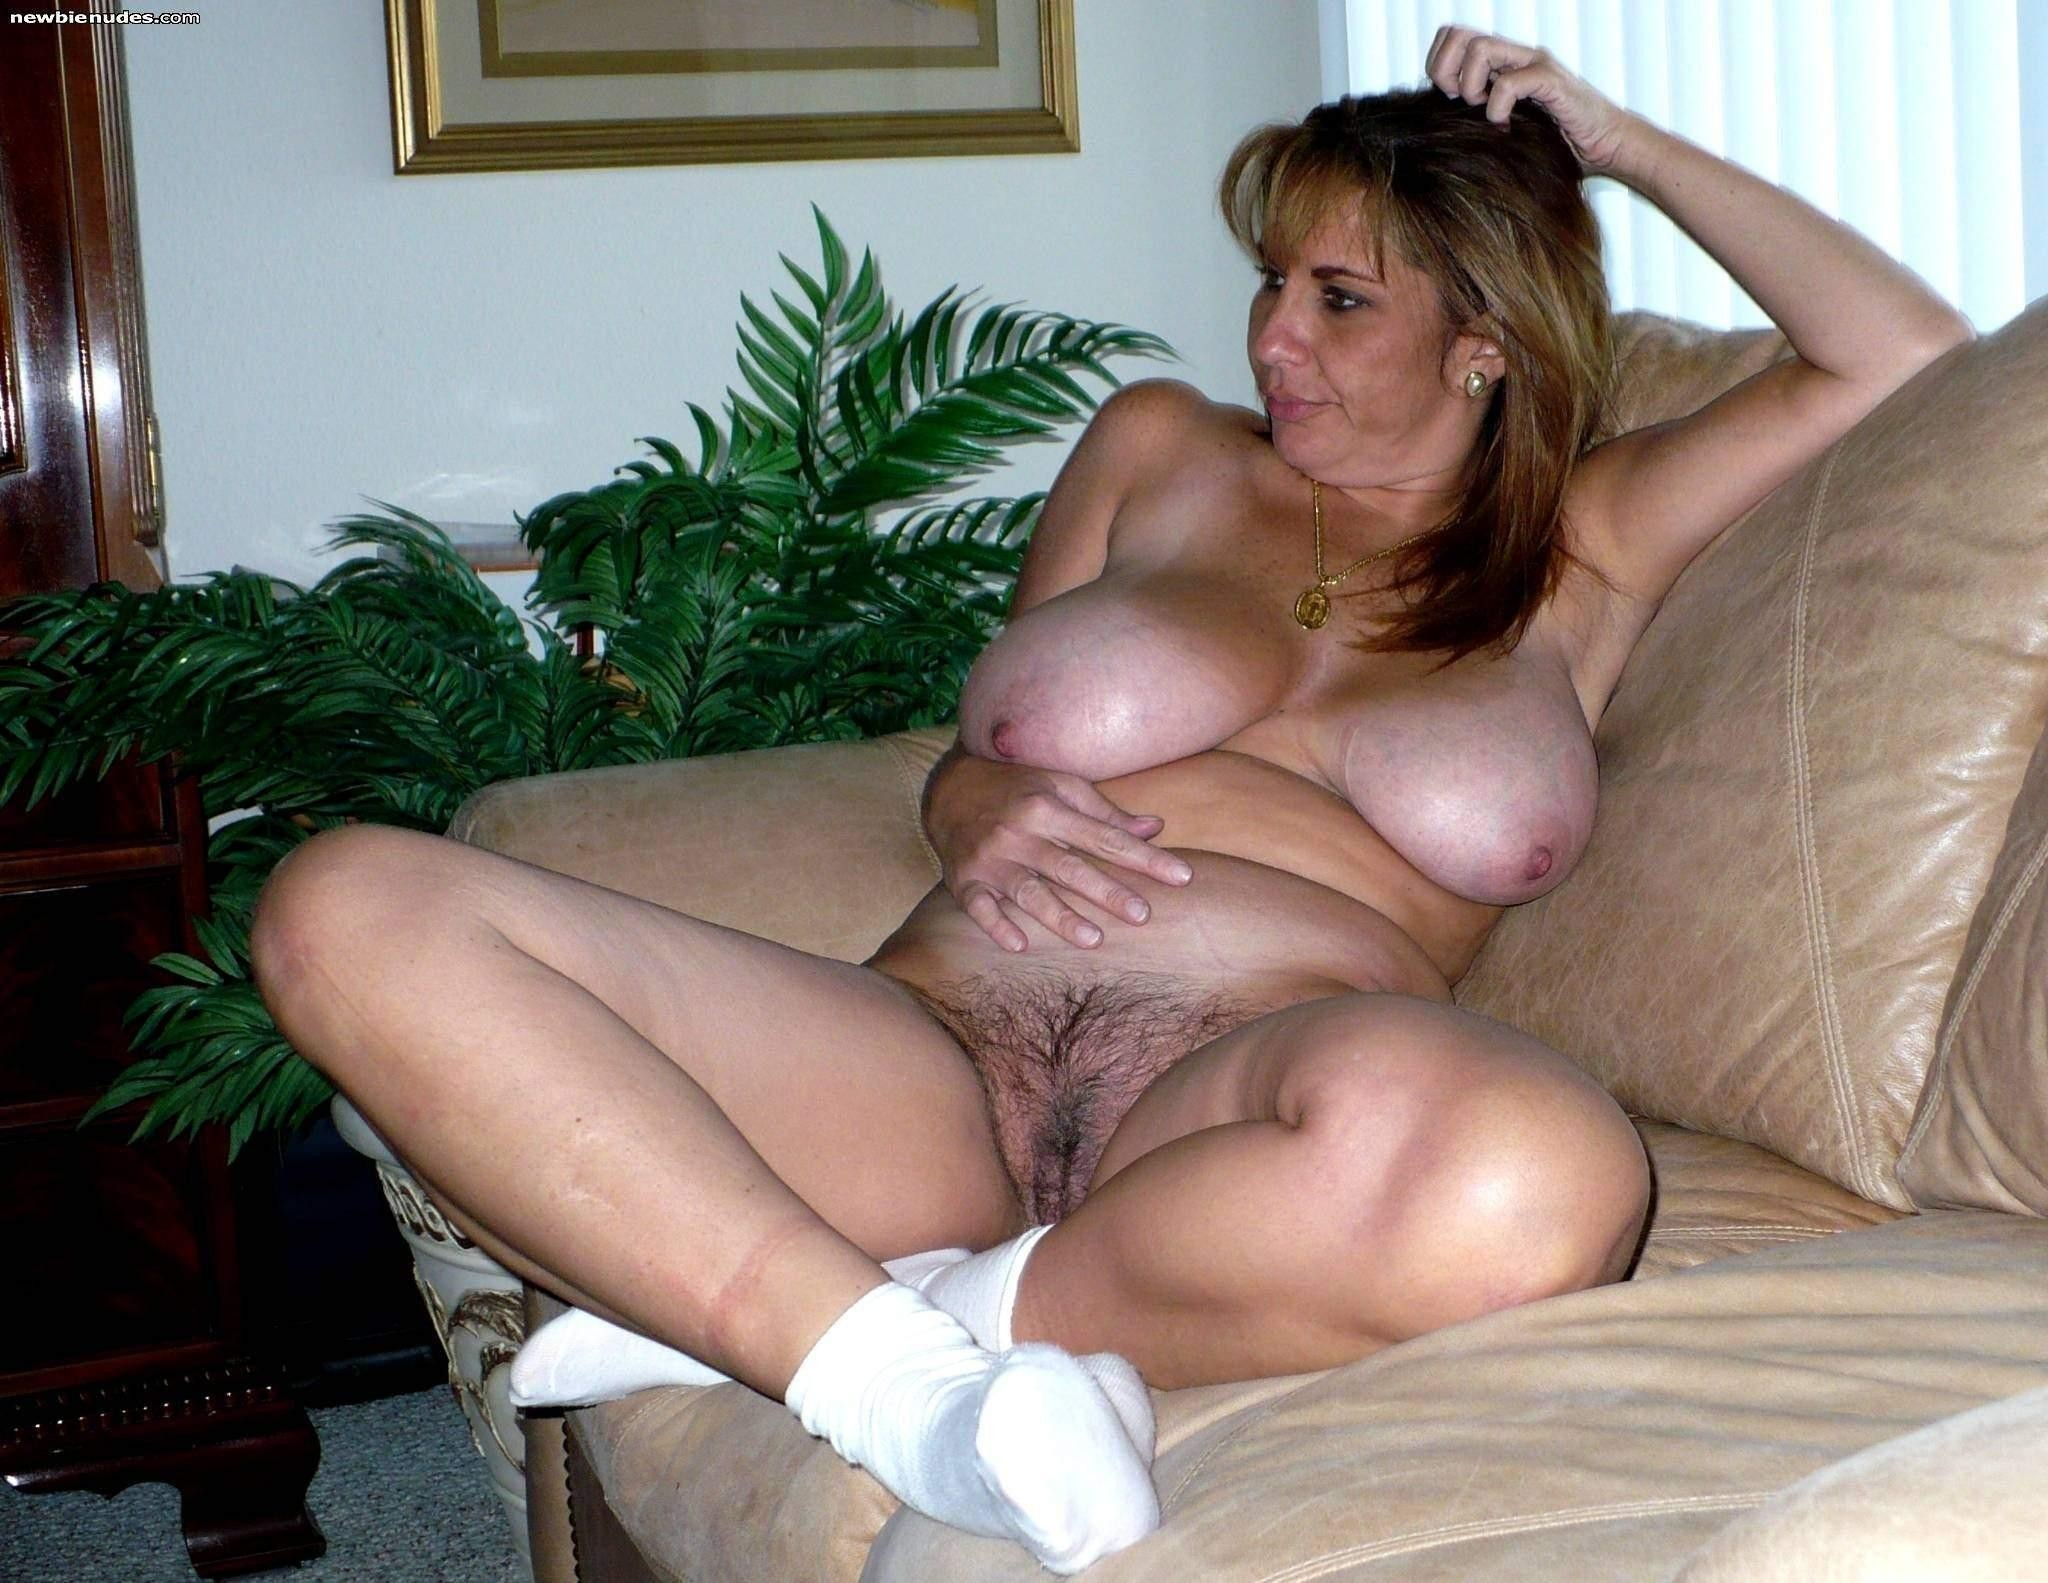 Natural hairy bush creampie